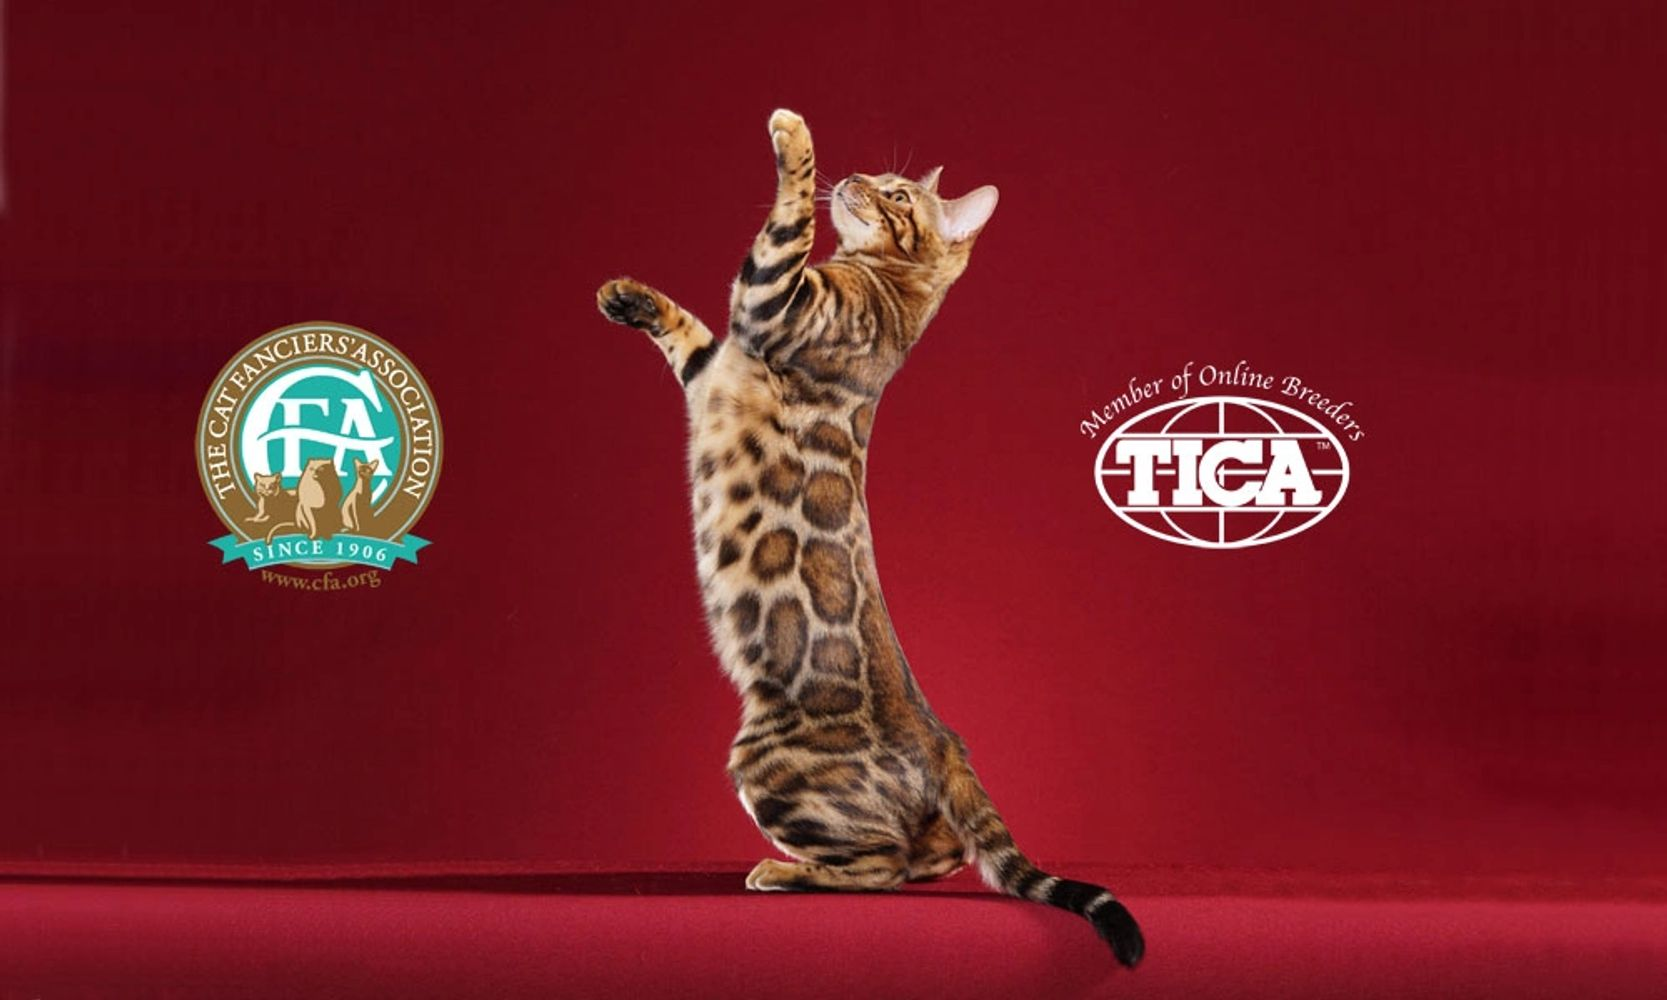 A Bengal cat standing and reaching. Paintedcats Red Star standing